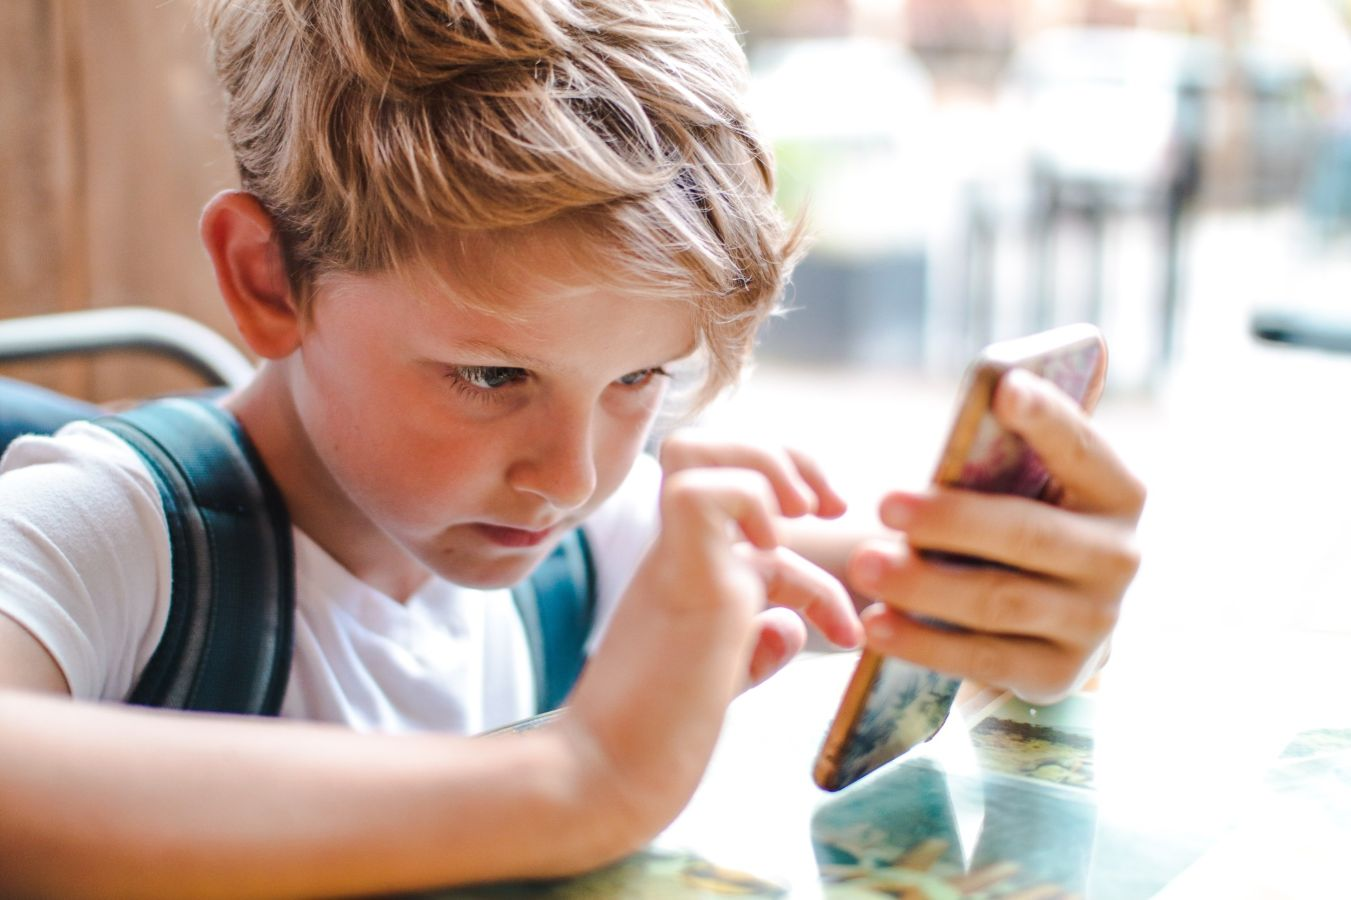 6 Ways to Tell if Your Children are Ready for Cell Phones